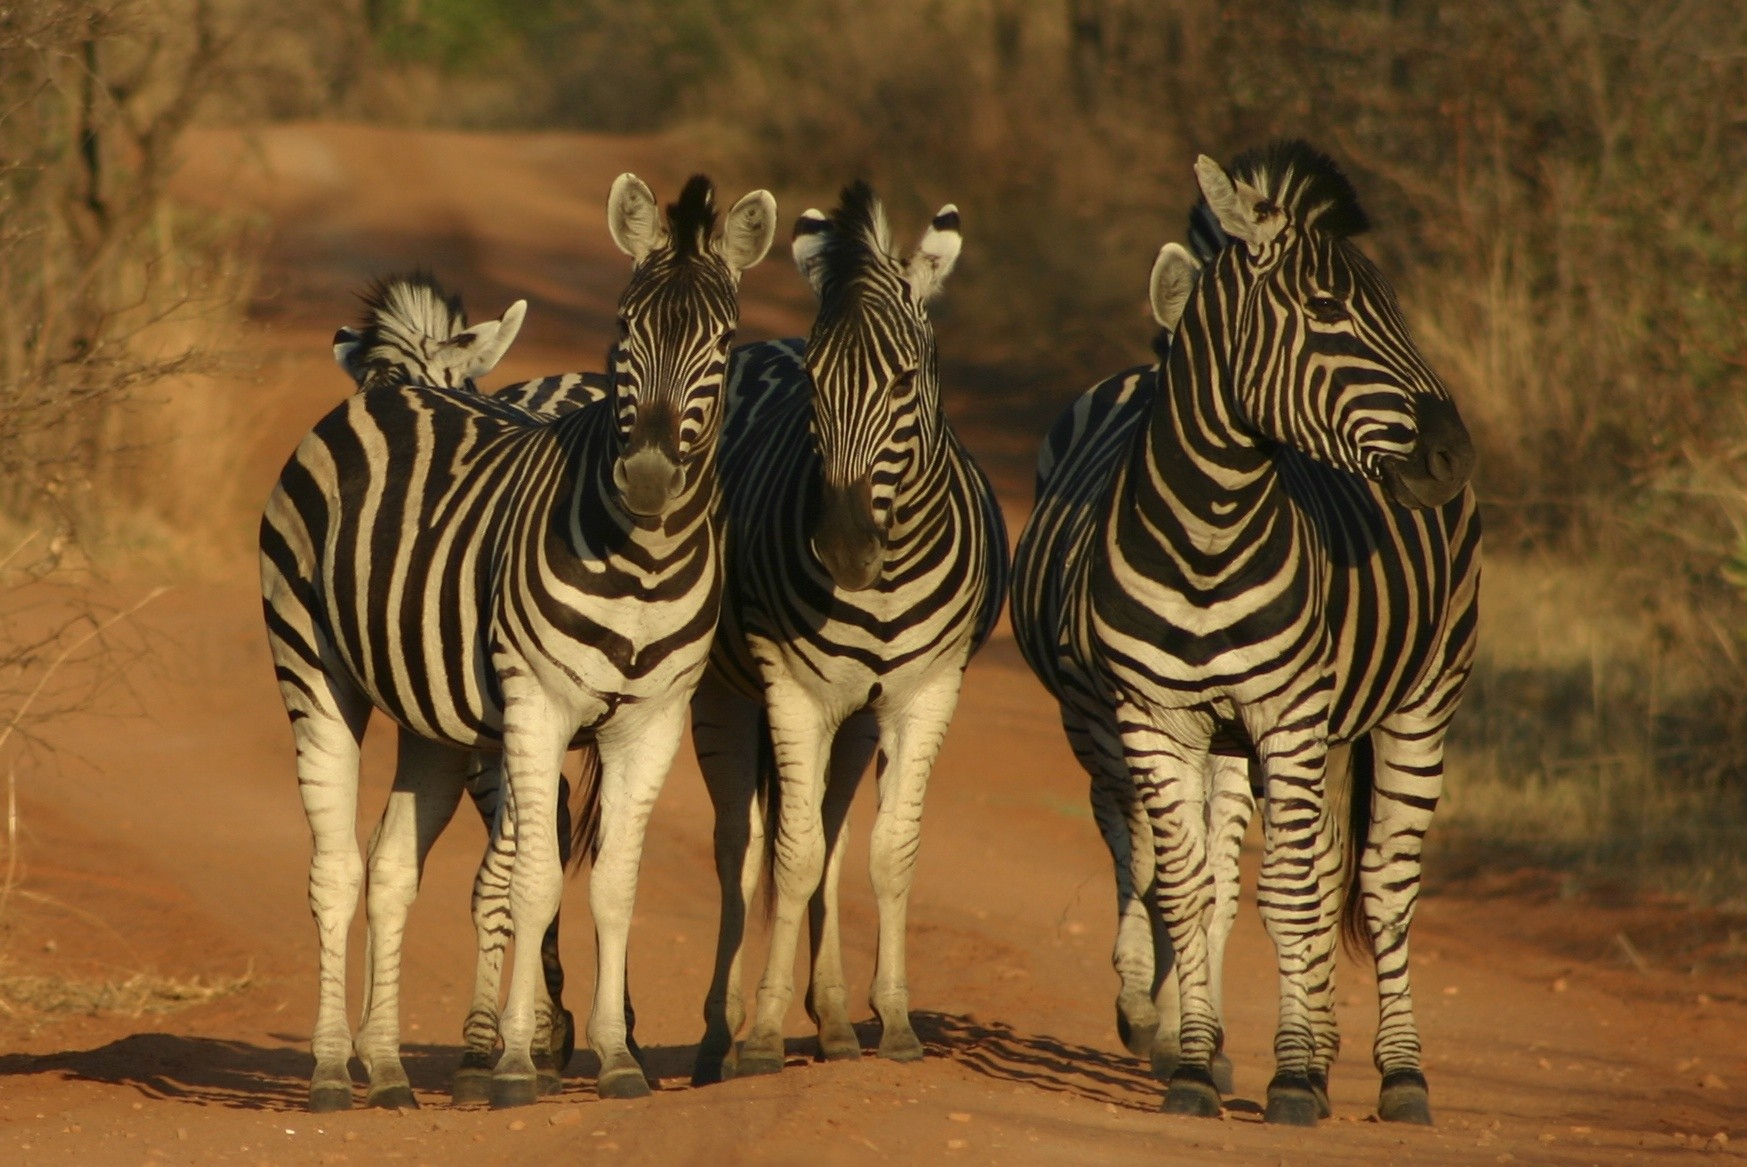 A group of 4 Zebras enjoying the last of the sun's rays and the camera!